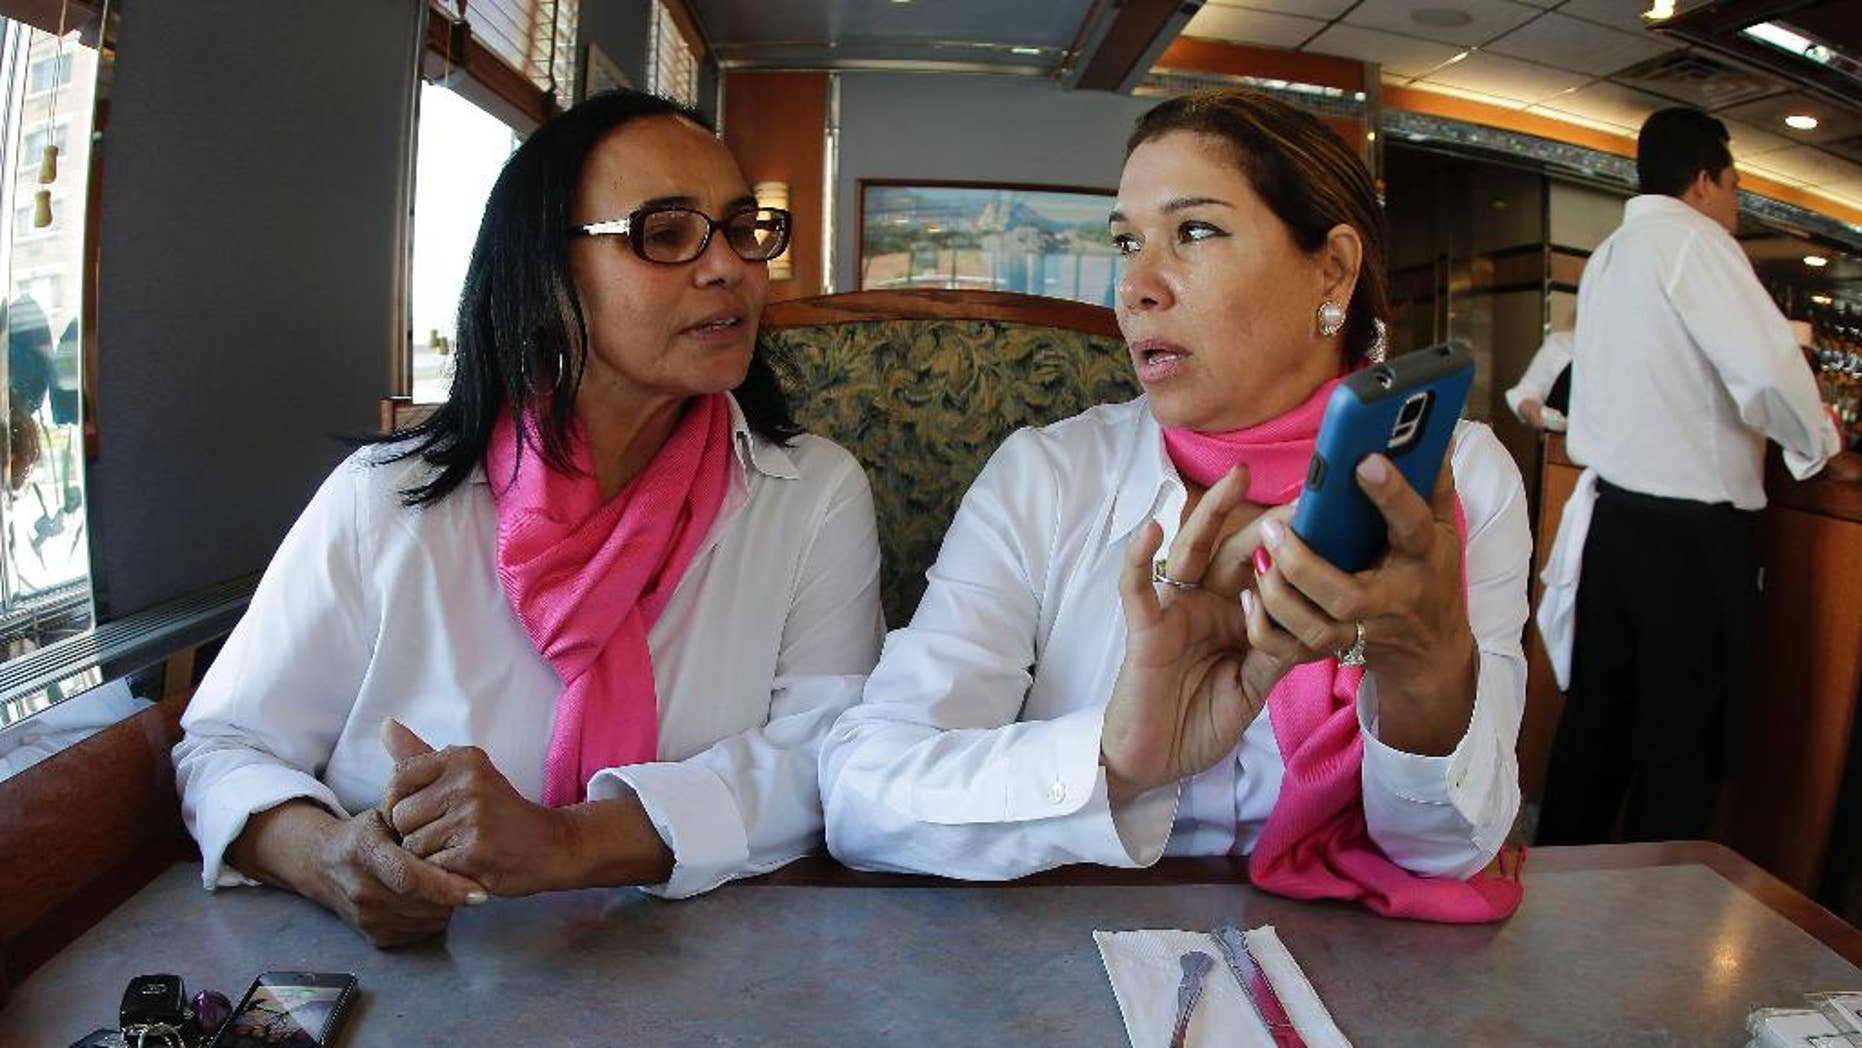 Dinorah De Cruz, left, talks with Stella Mateo, founder of the SheTaxi/SheRides car service, while taking a lunch break, Monday, Sept. 15, 2014, in New York.